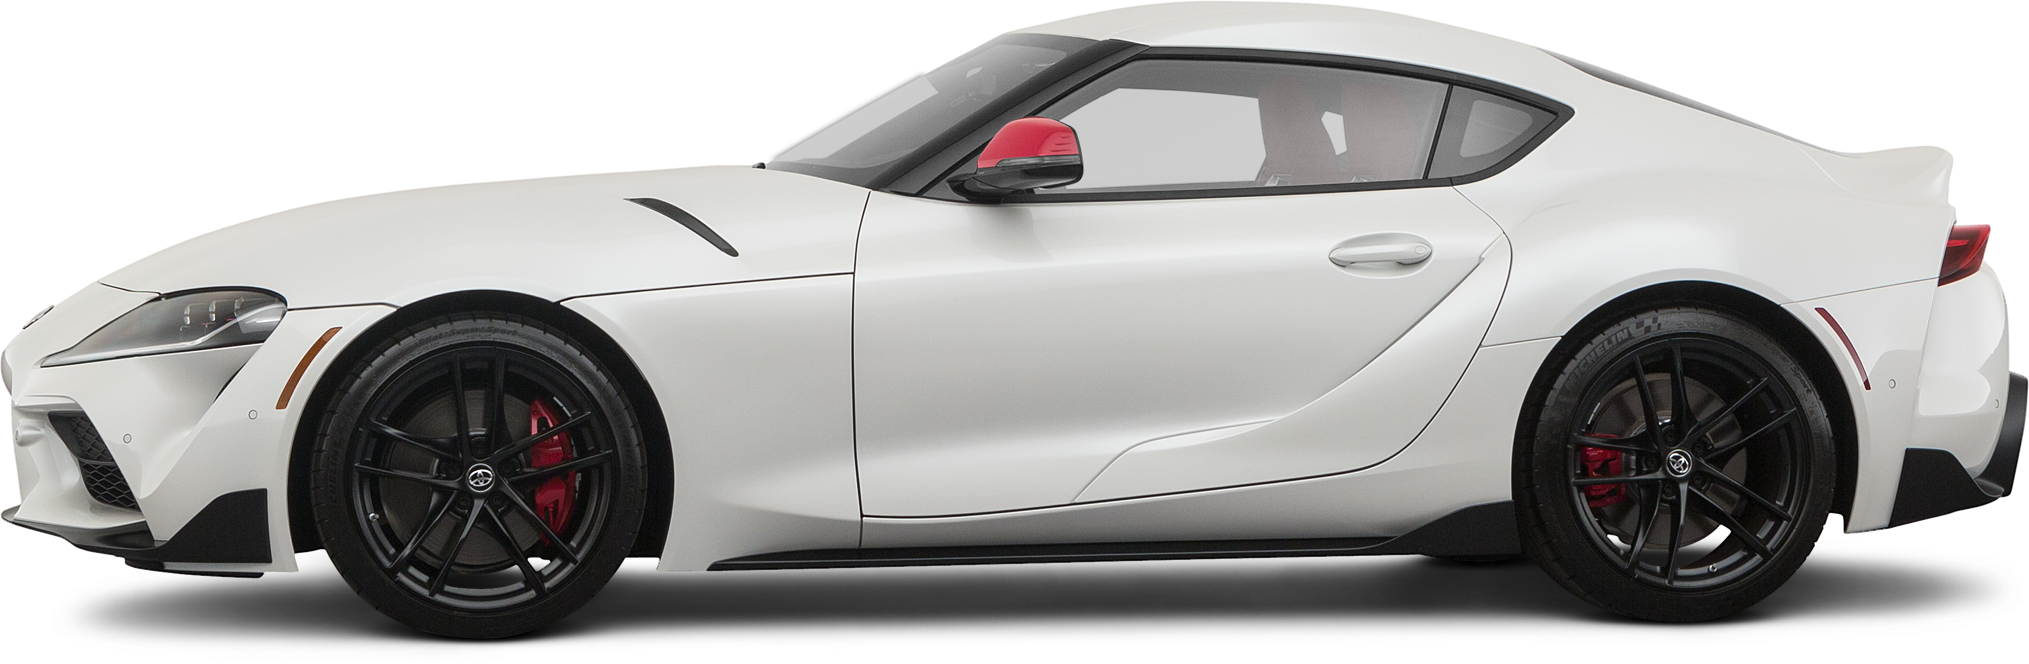 2020 Toyota Supra Coupe 3.0 Premium Launch Edition